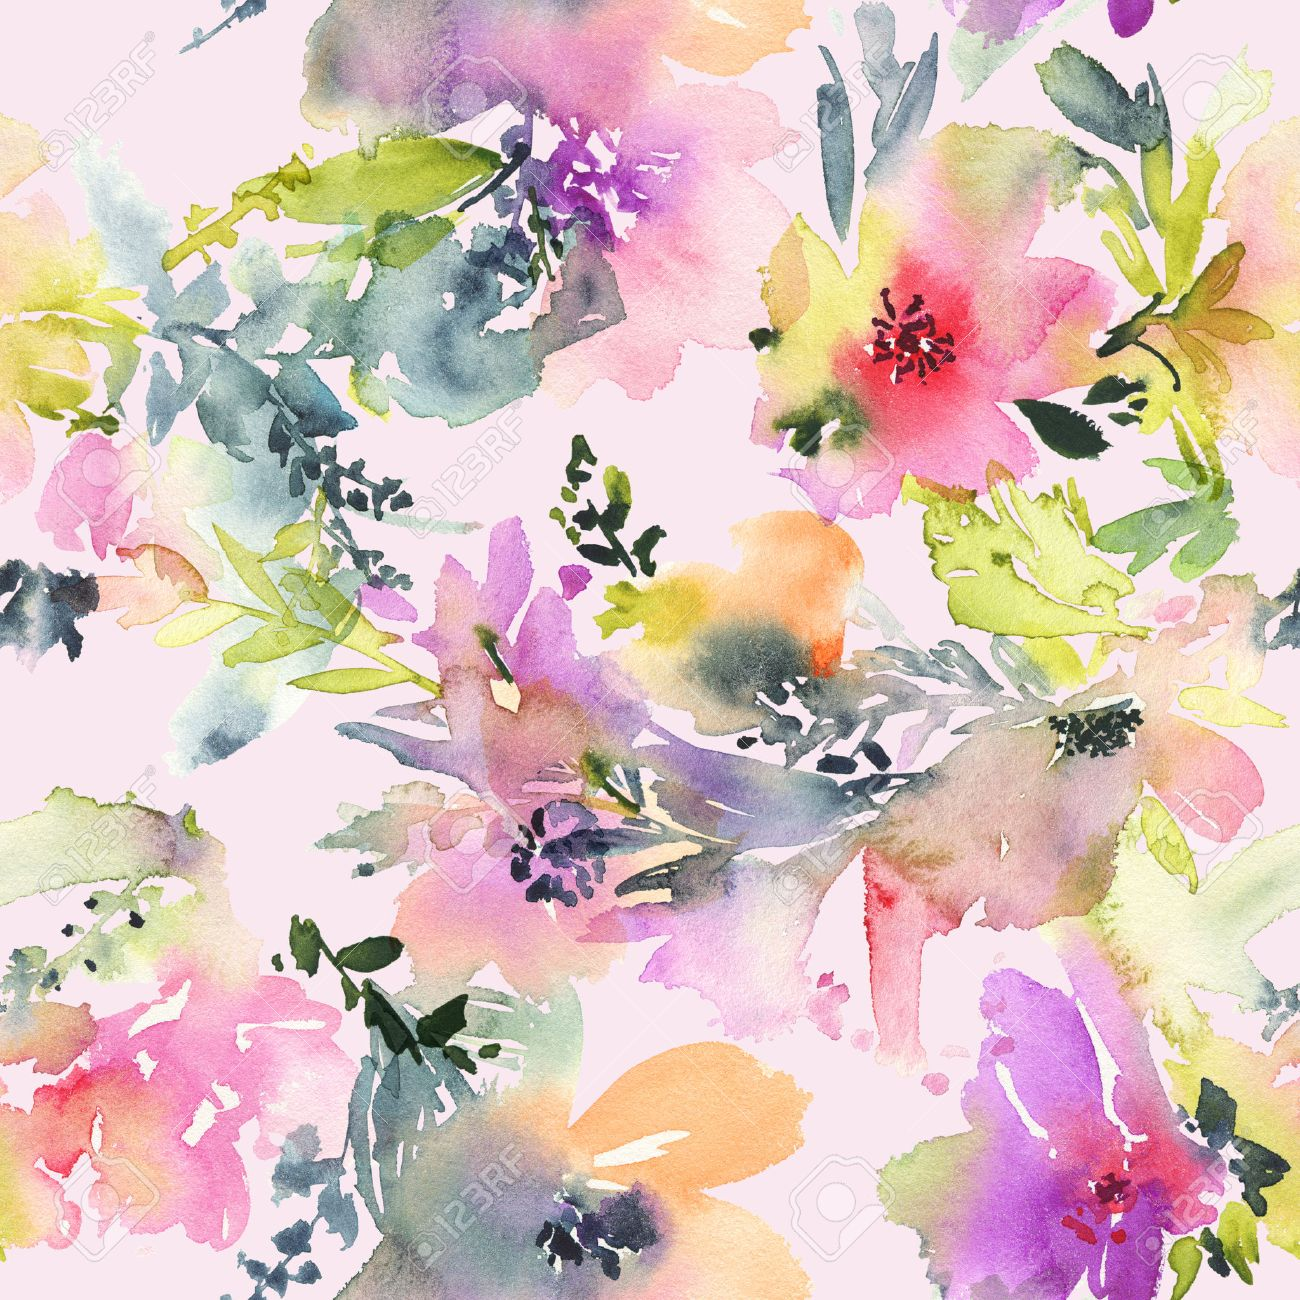 Abstract Watercolor Flowers Seamless Pattern Bright Colors The Unusual Shape Stock Photo